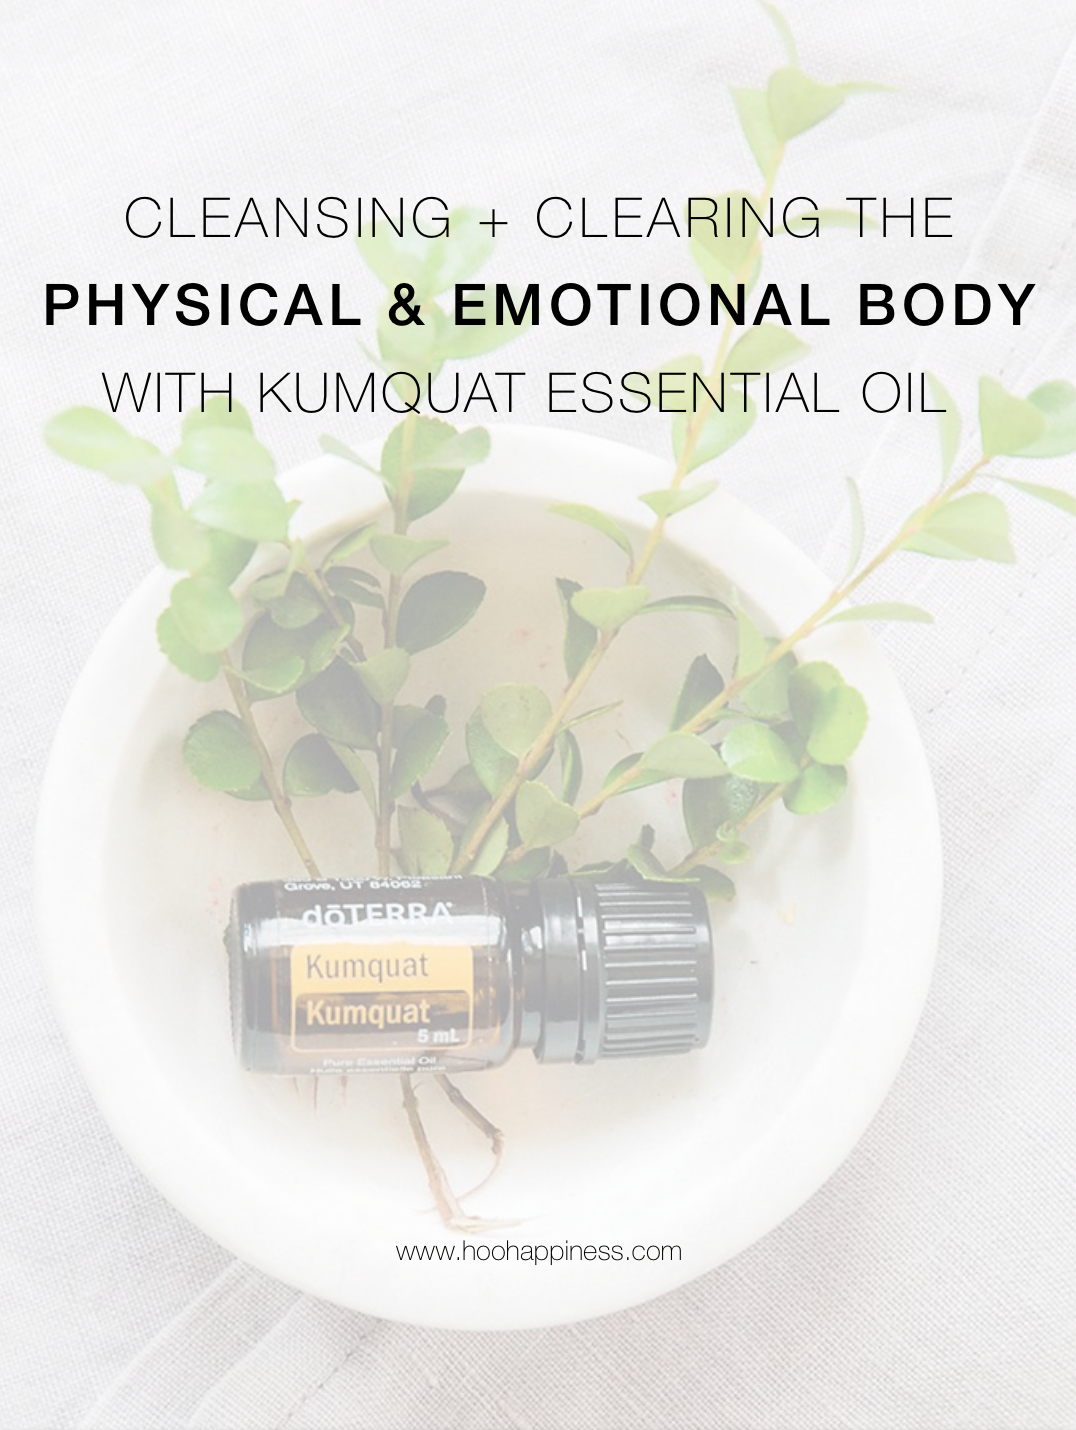 Cleansing + Clearing the Physical & Emotional Body with Kumquat Essential Oil